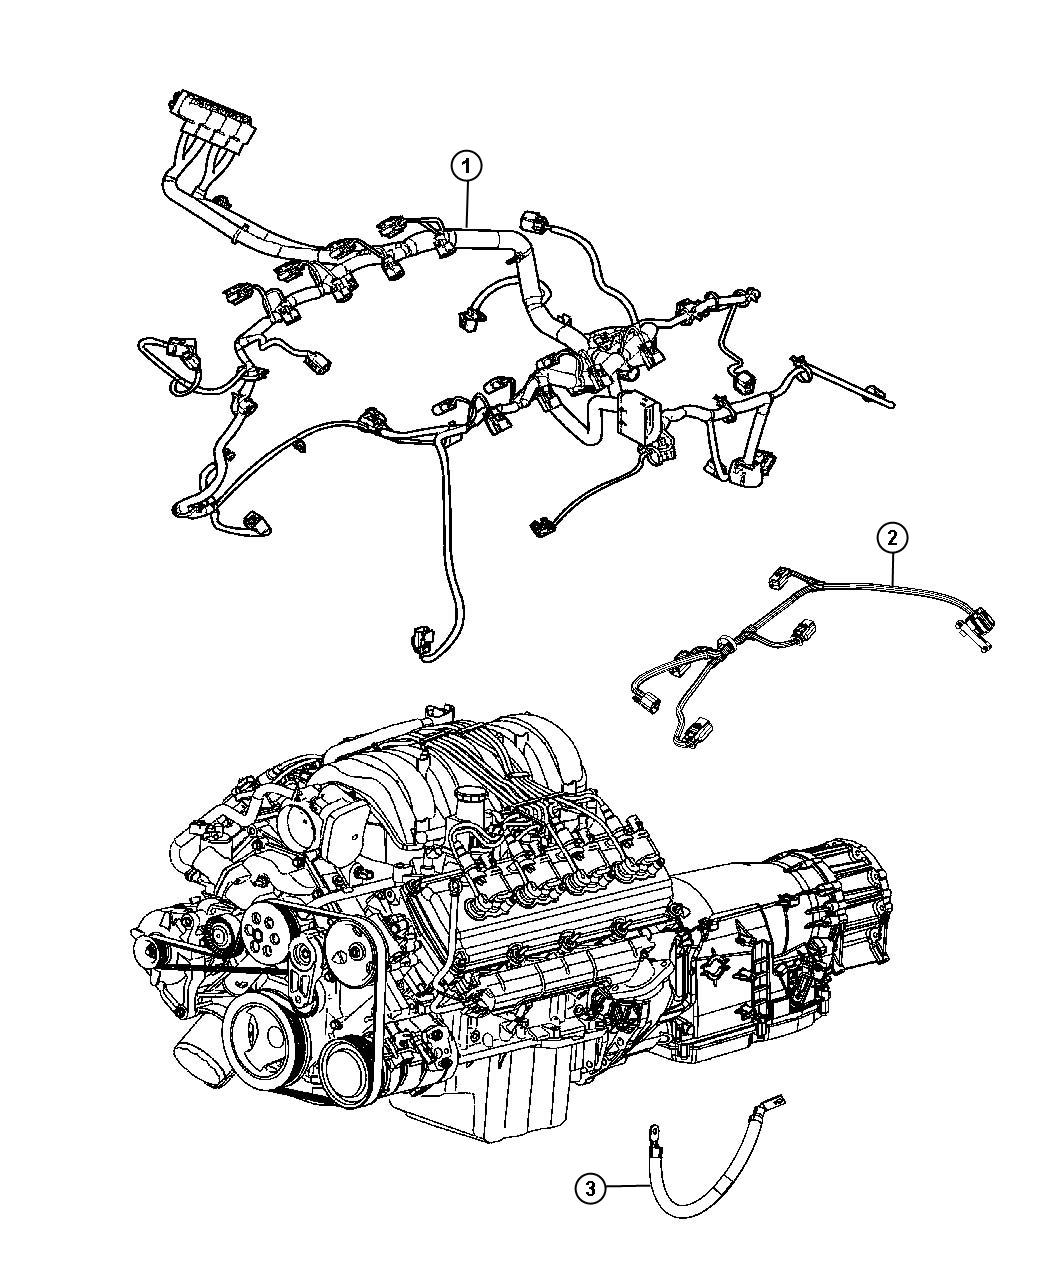 2012 Dodge Durango Engine Diagram : 2012 dodge durango wiring ground jumper after 4 12 10 ~ A.2002-acura-tl-radio.info Haus und Dekorationen